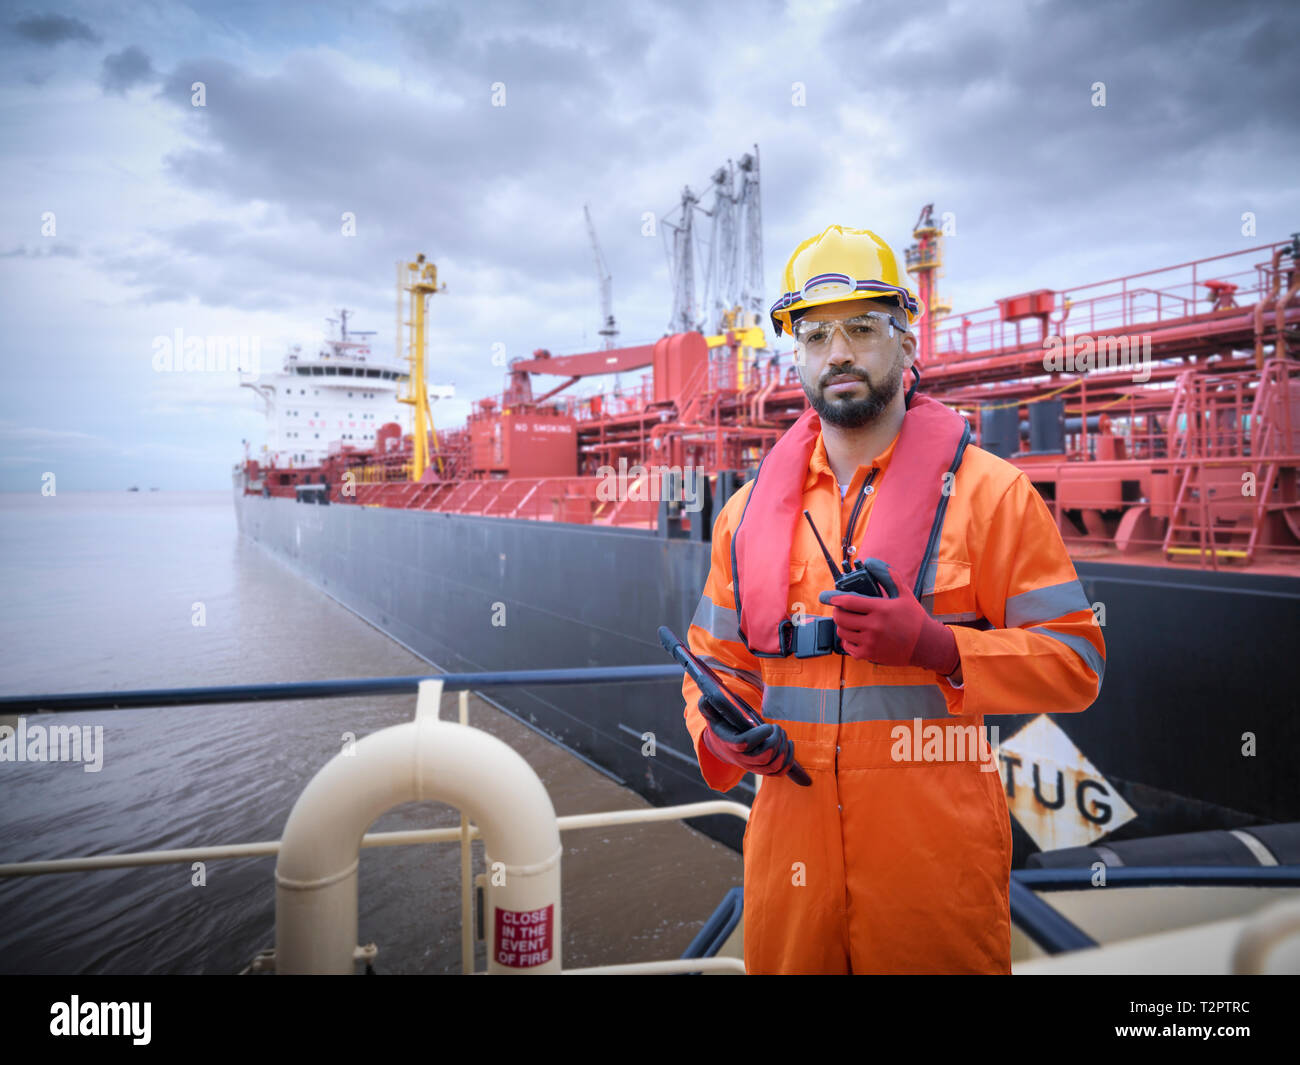 Composite image of ship worker on tugboat with oil tanker - Stock Image